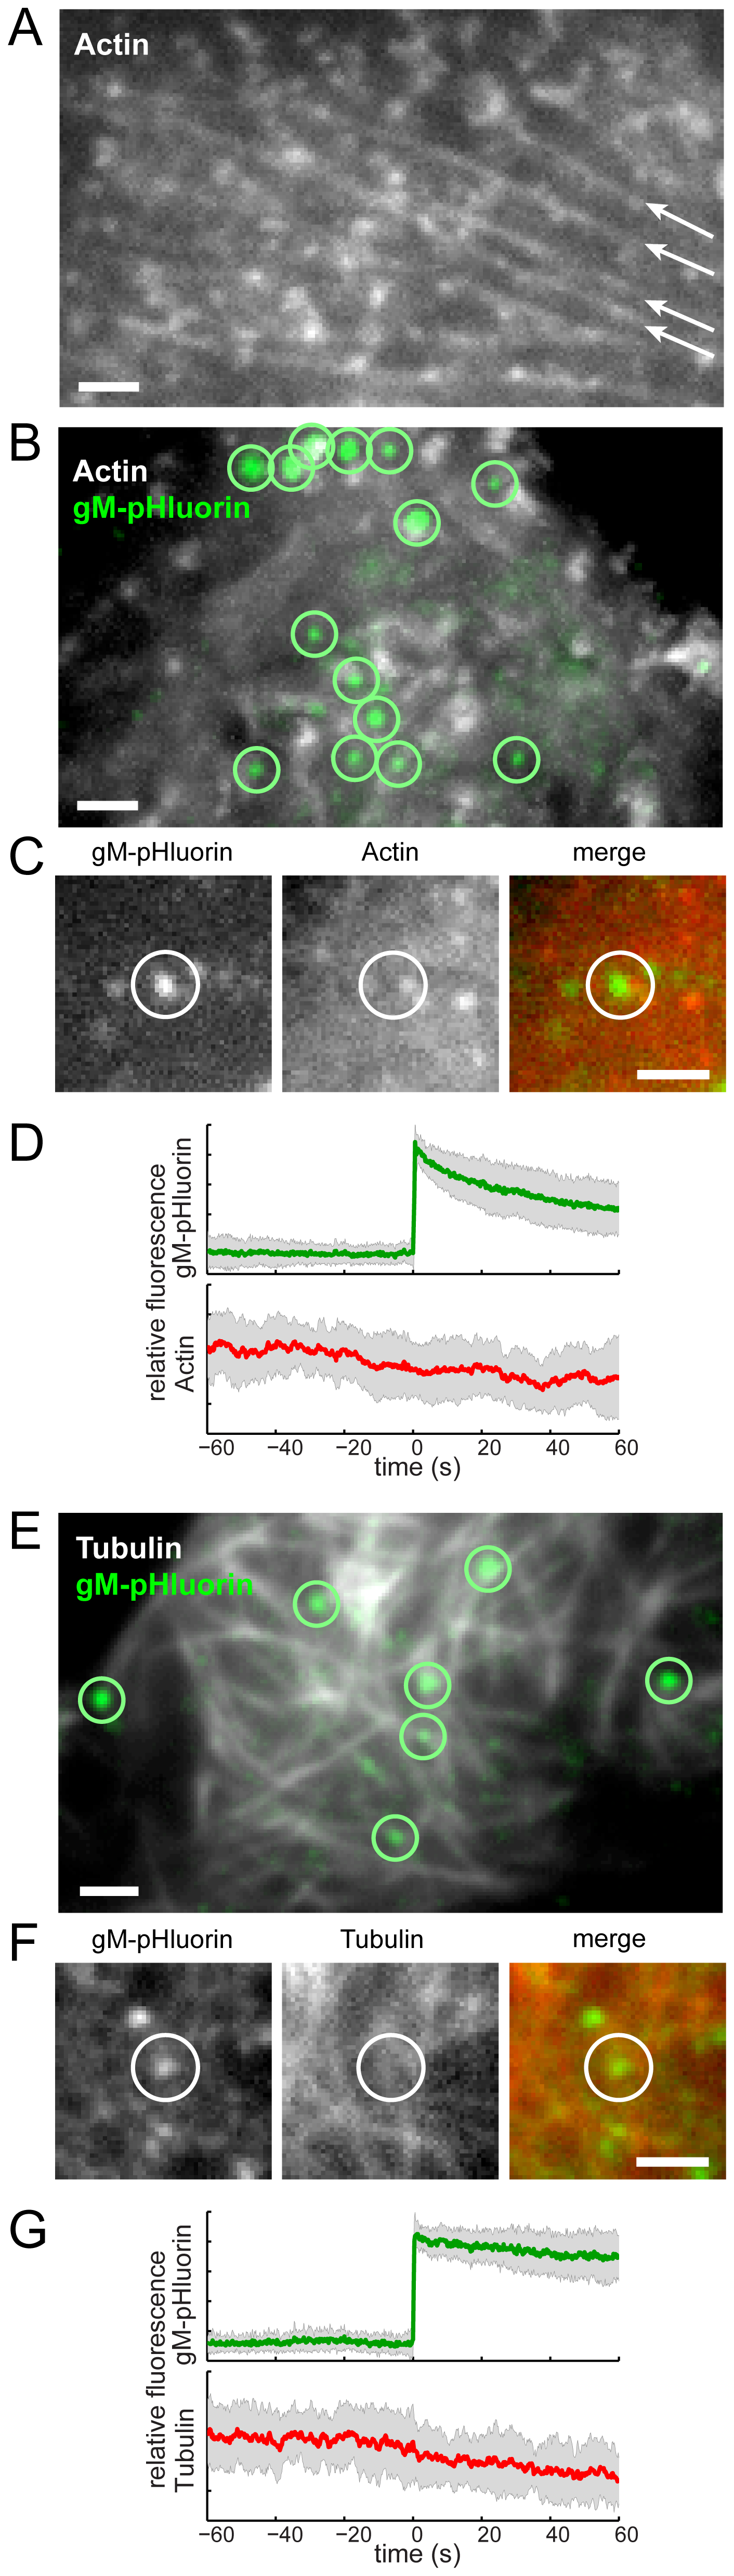 Viral exocytosis does not occur at specialized sites depleted in cytoskeleton proteins.